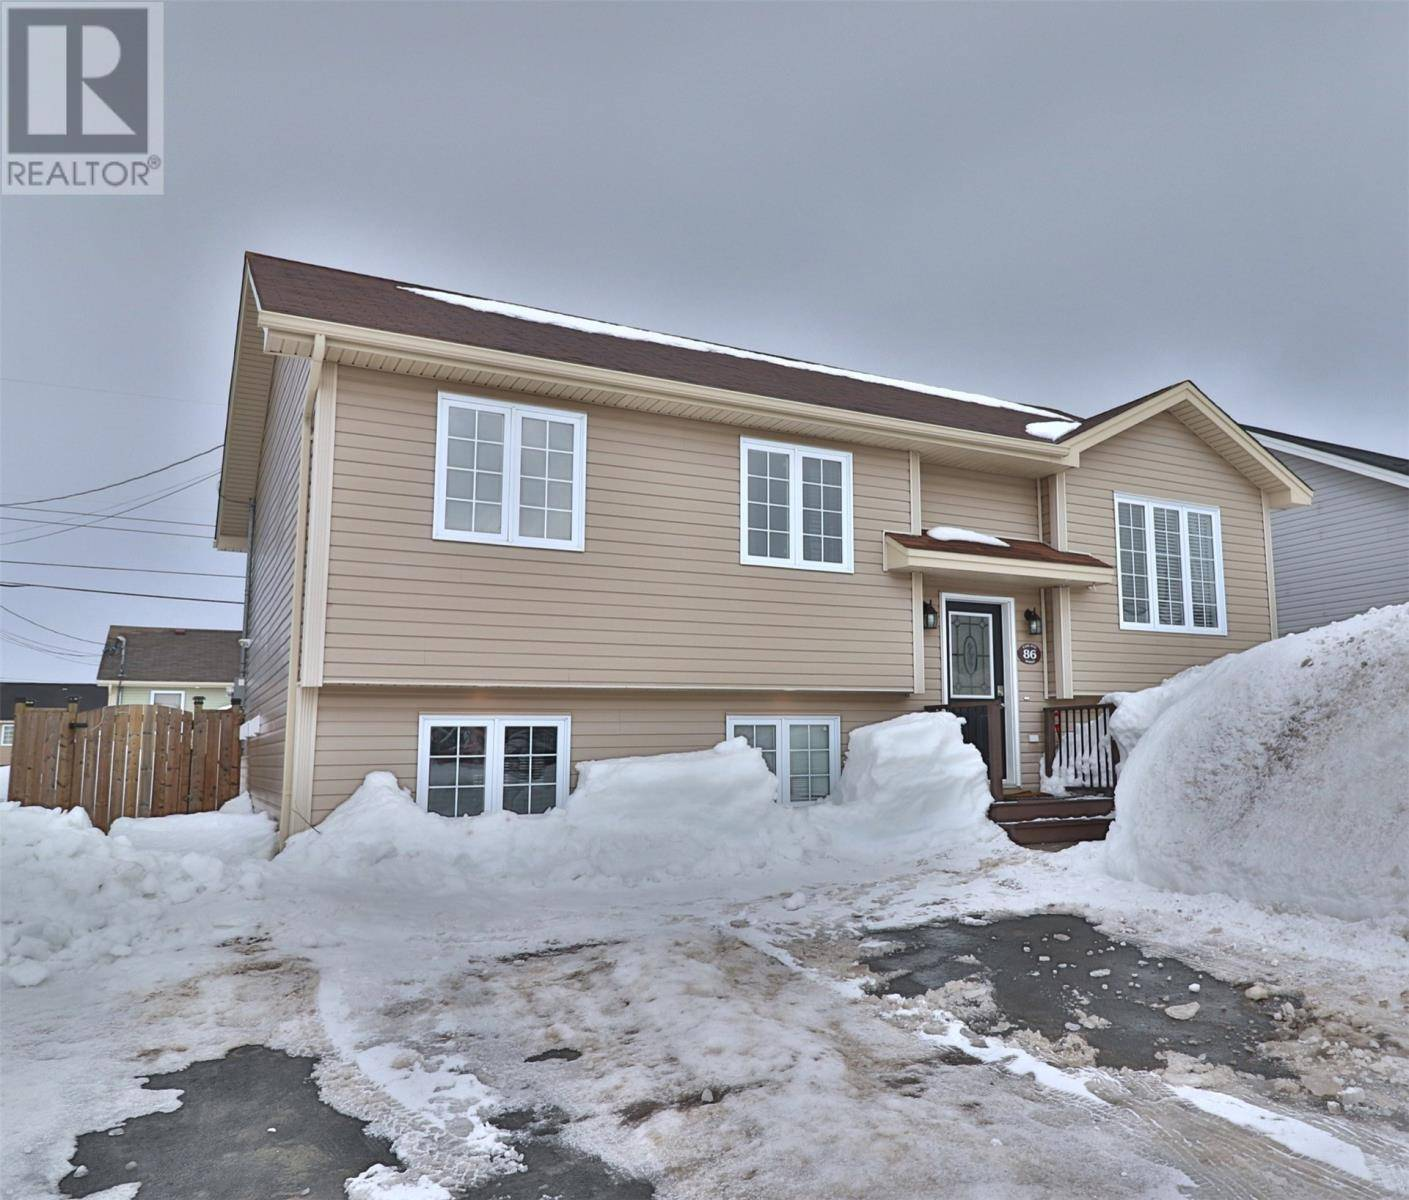 House for sale at 86 Cape Pine St St. John's Newfoundland - MLS: 1209916